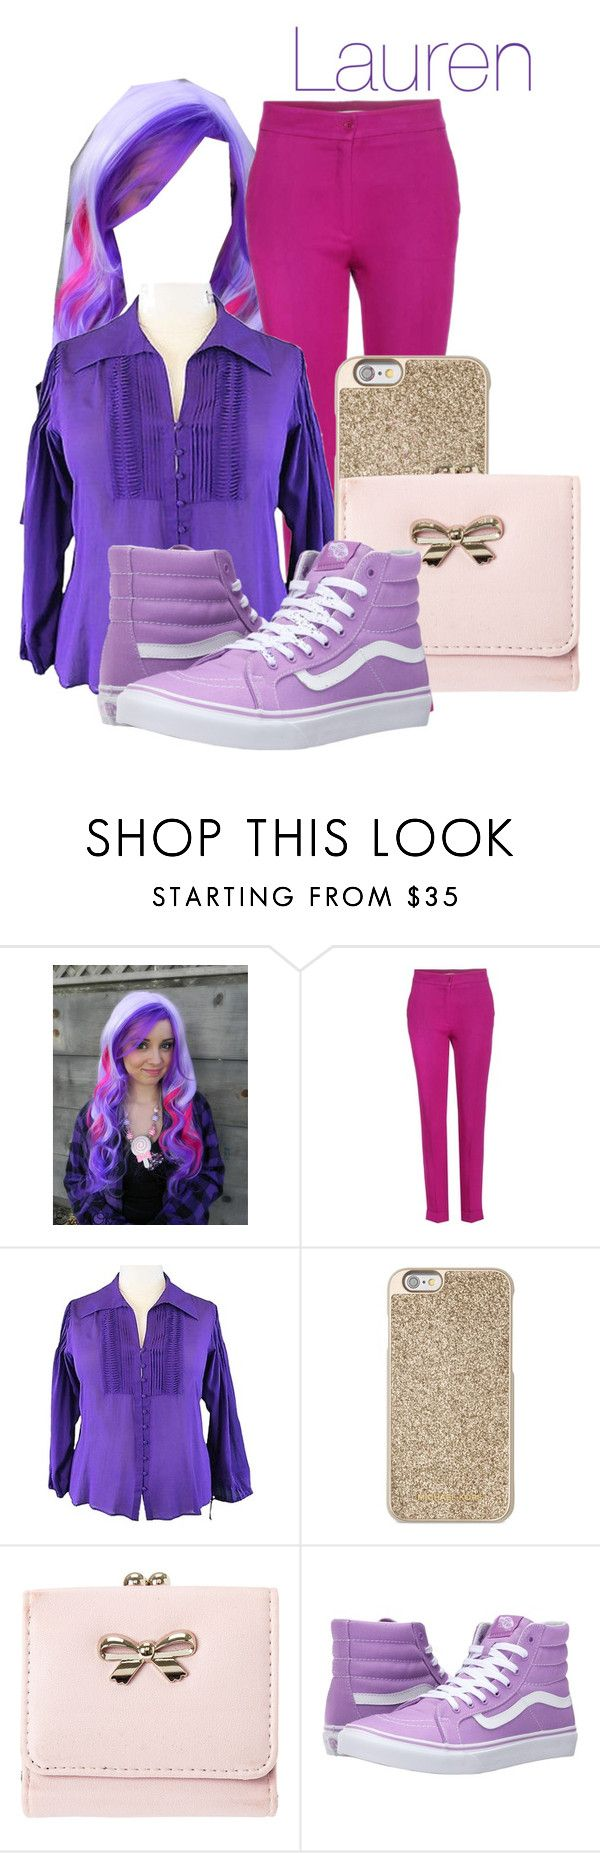 """Lauren (Mr. Stubborn's daughter)"" by dairyqueen55 ❤ liked on Polyvore featuring Etro, Marina Rinaldi, Michael Kors and Vans"